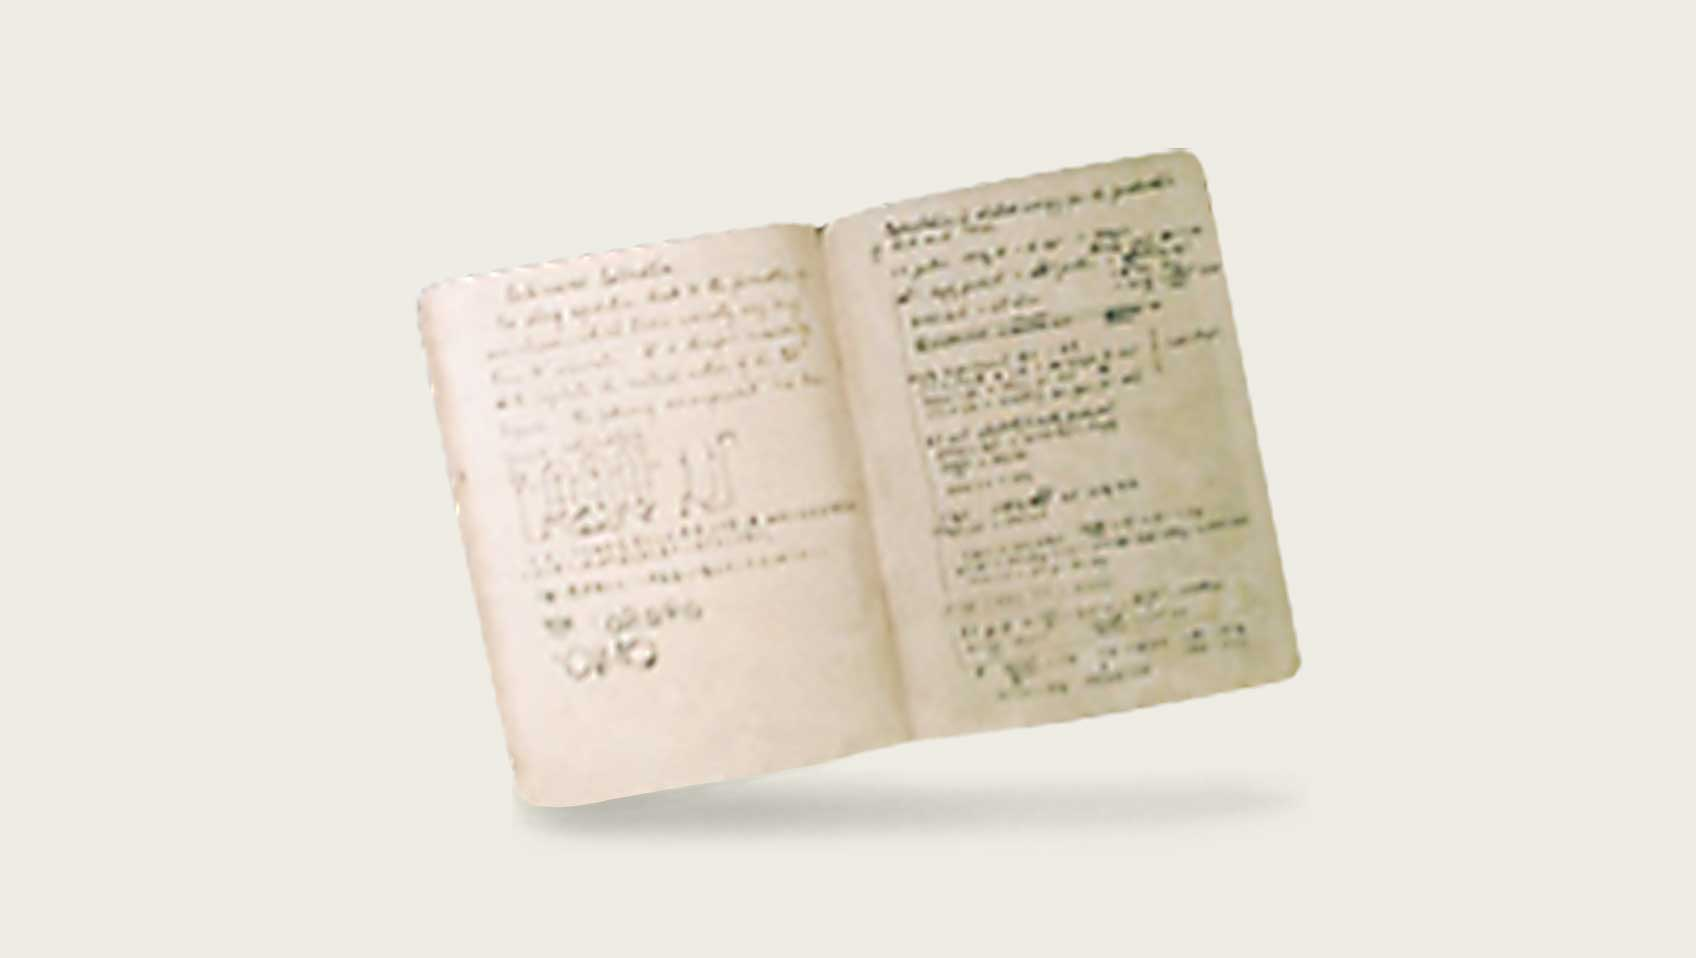 Dr. Ikeda's research notes (1918–1929)